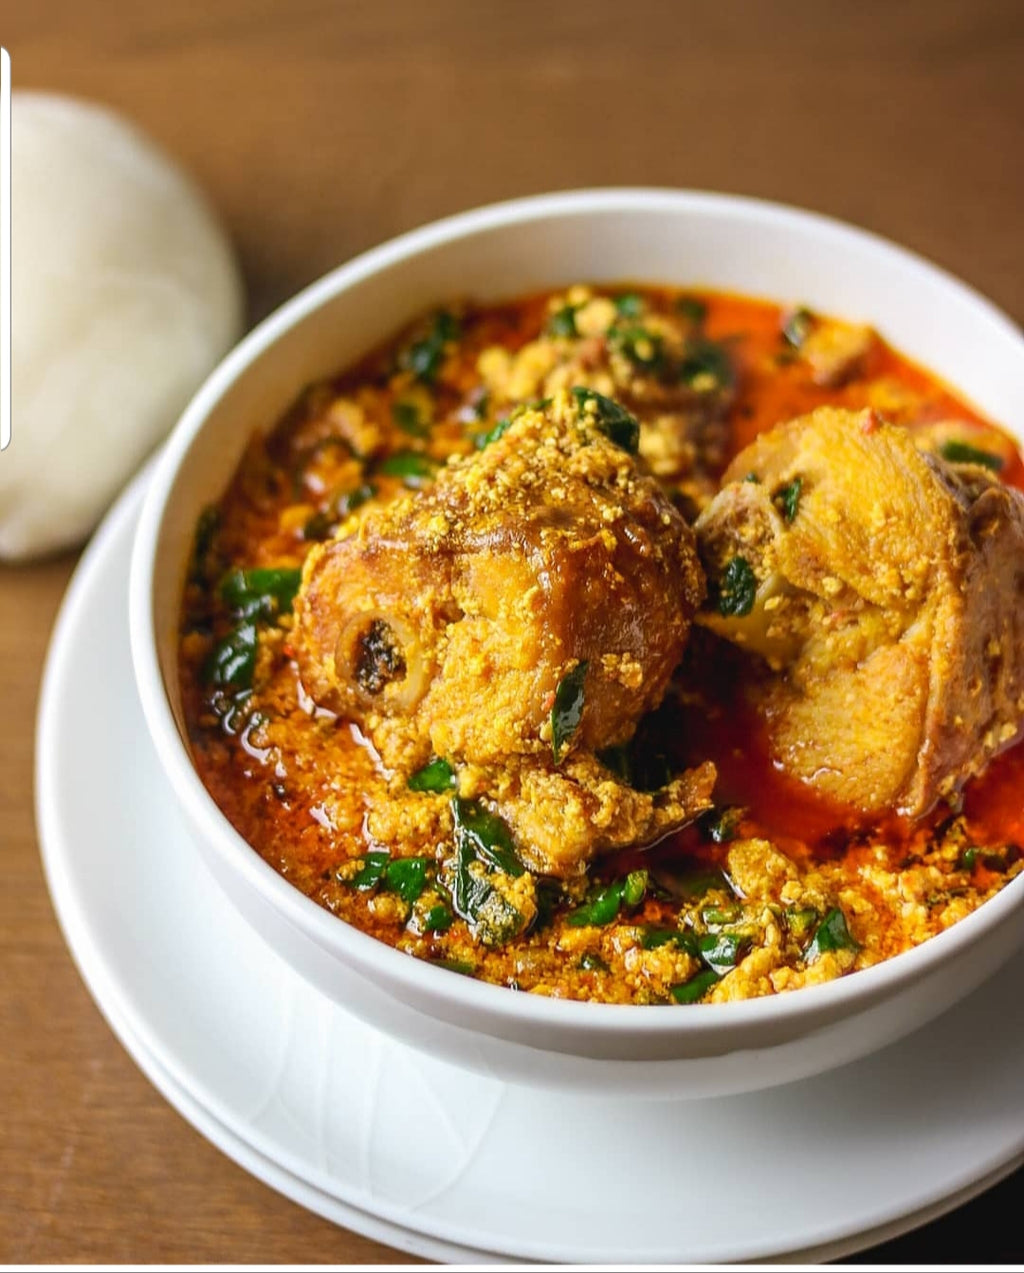 Egusi served with either Semolina, Pounded Yams or Nshima